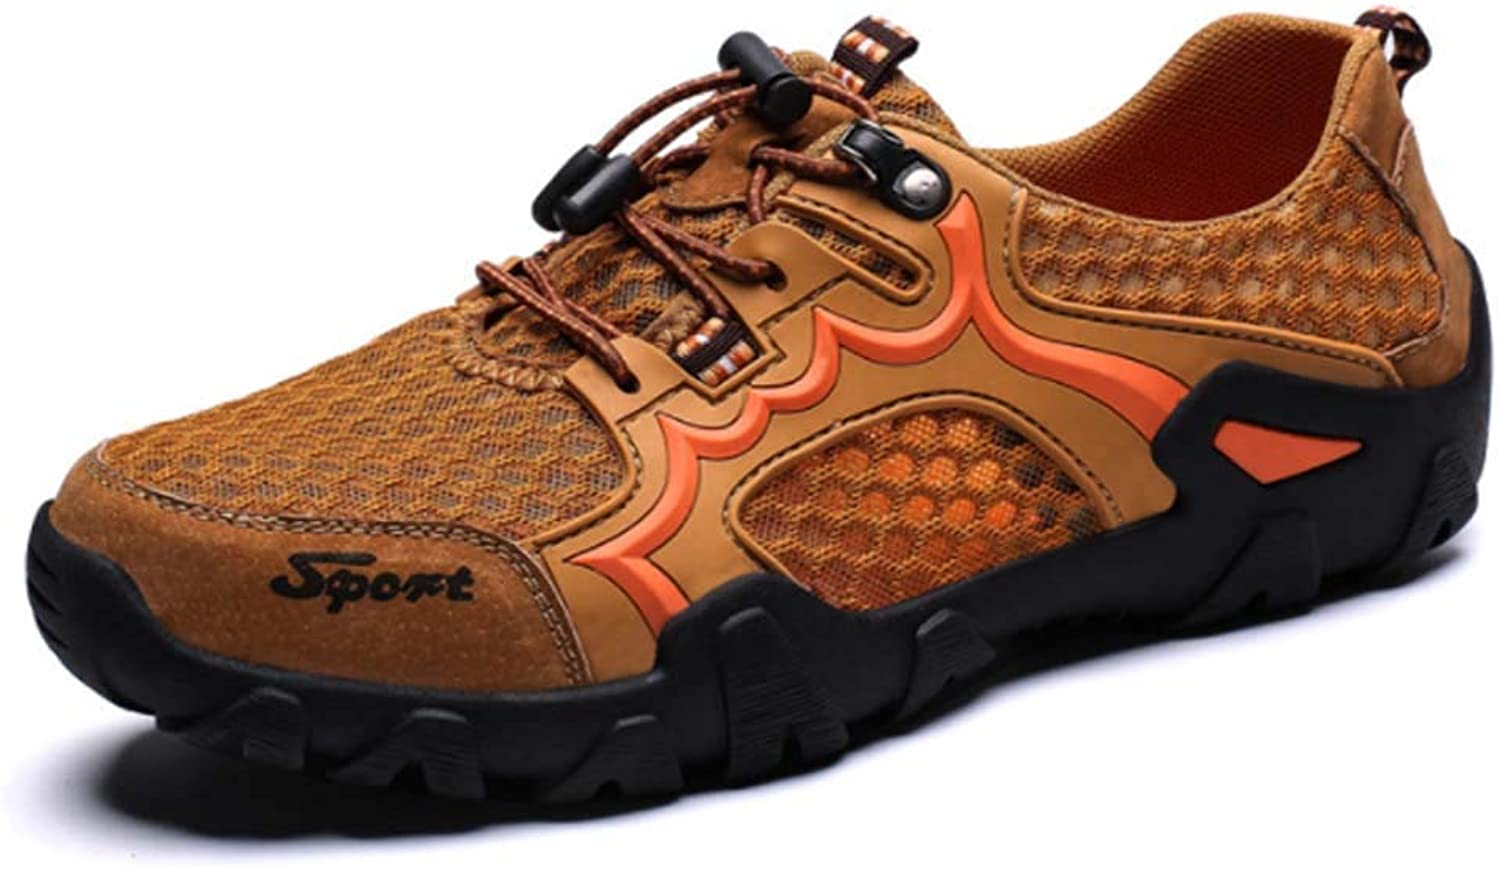 XSPDX Hiking shoes Men's Mesh Breathable Sports Outdoor shoes Non Slip Trainers shoes Lightweight Summer shoes for Beach Basketball Badminton Camping,Earthyellow,45EU